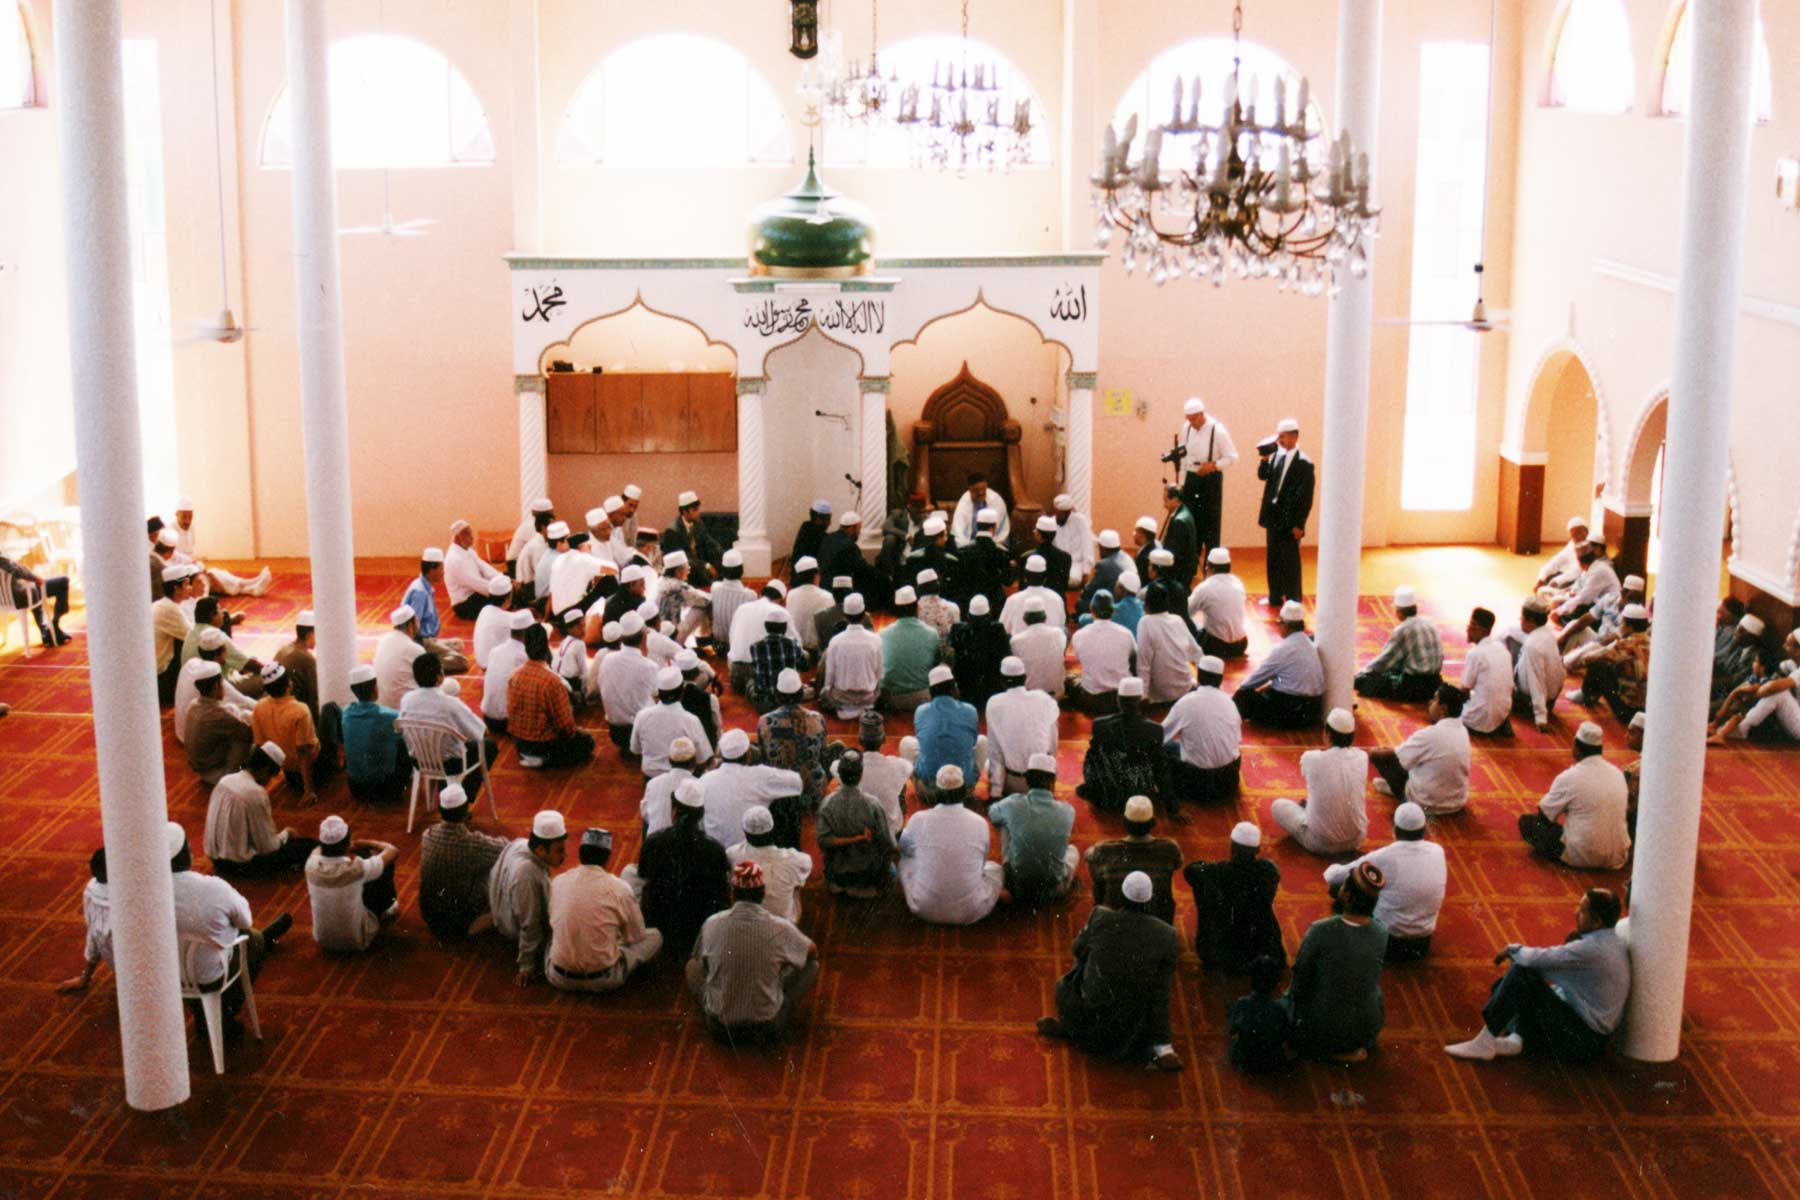 Cape Malay culture | Steven Andrew Martin | Host family | Islam Mosque | Religious Studies | Cape Town | South Africa